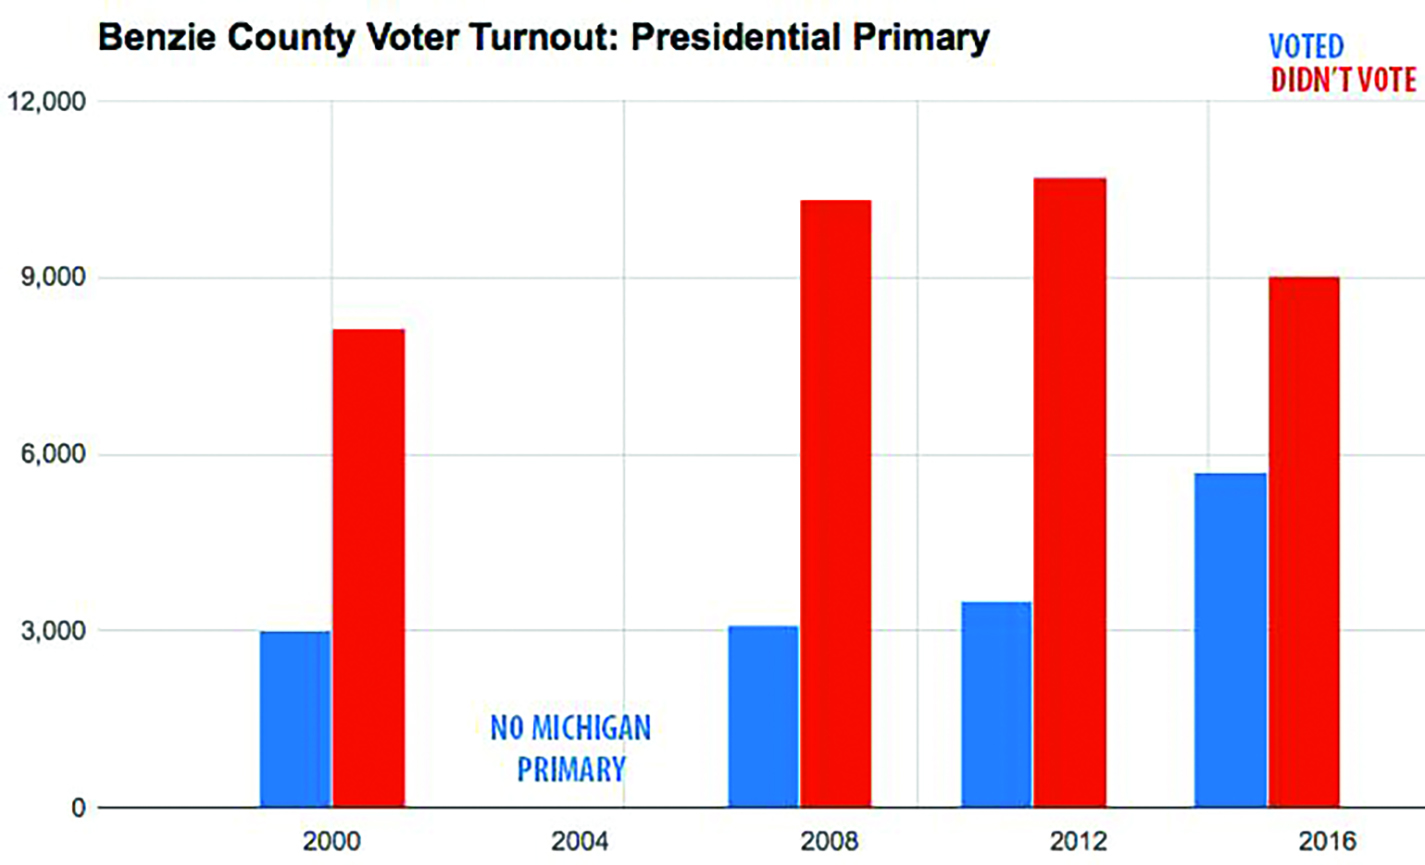 The 2016 presidential primary helped to close the gap between the number of Benzie County's registered voters who vote (in blue) compared with the number who do not vote (in red). Graphic by Aubrey Ann Parker.